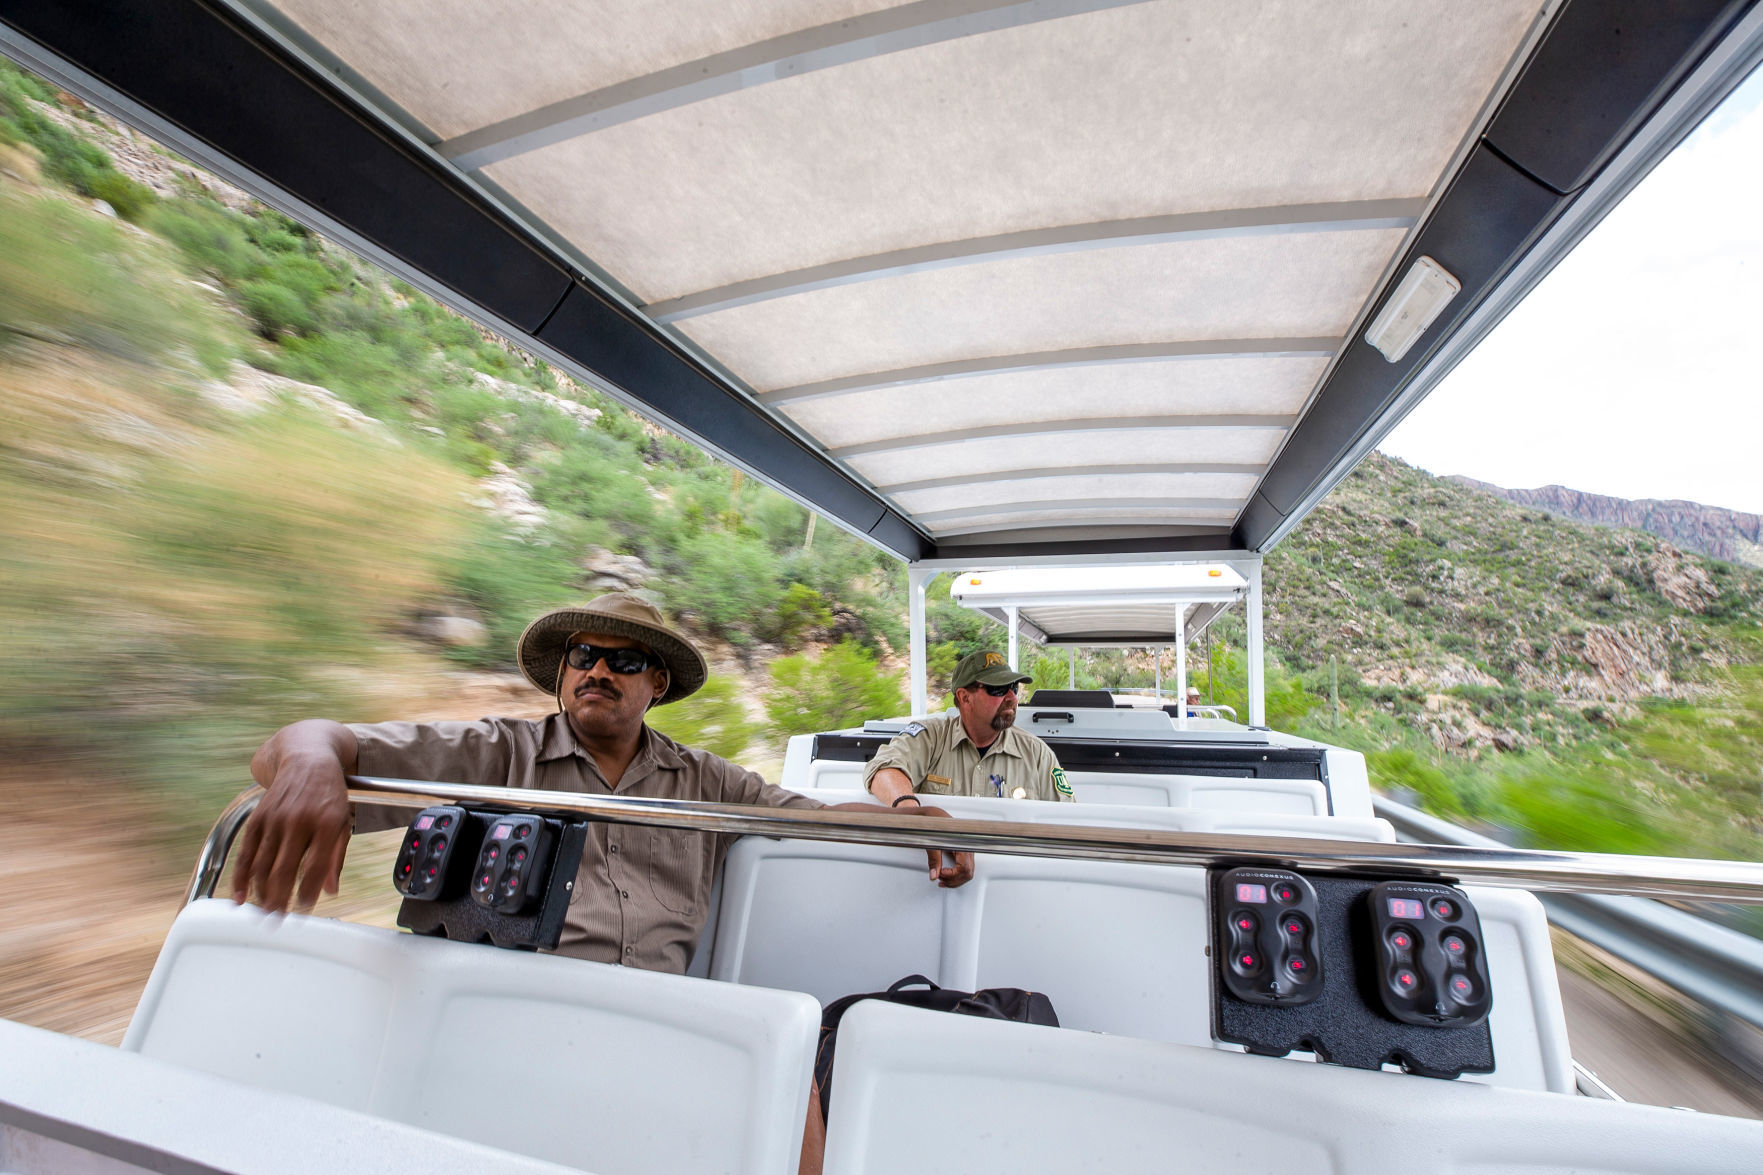 Vehicle testing underway as Sabino Canyon moves closer to electric shuttle service